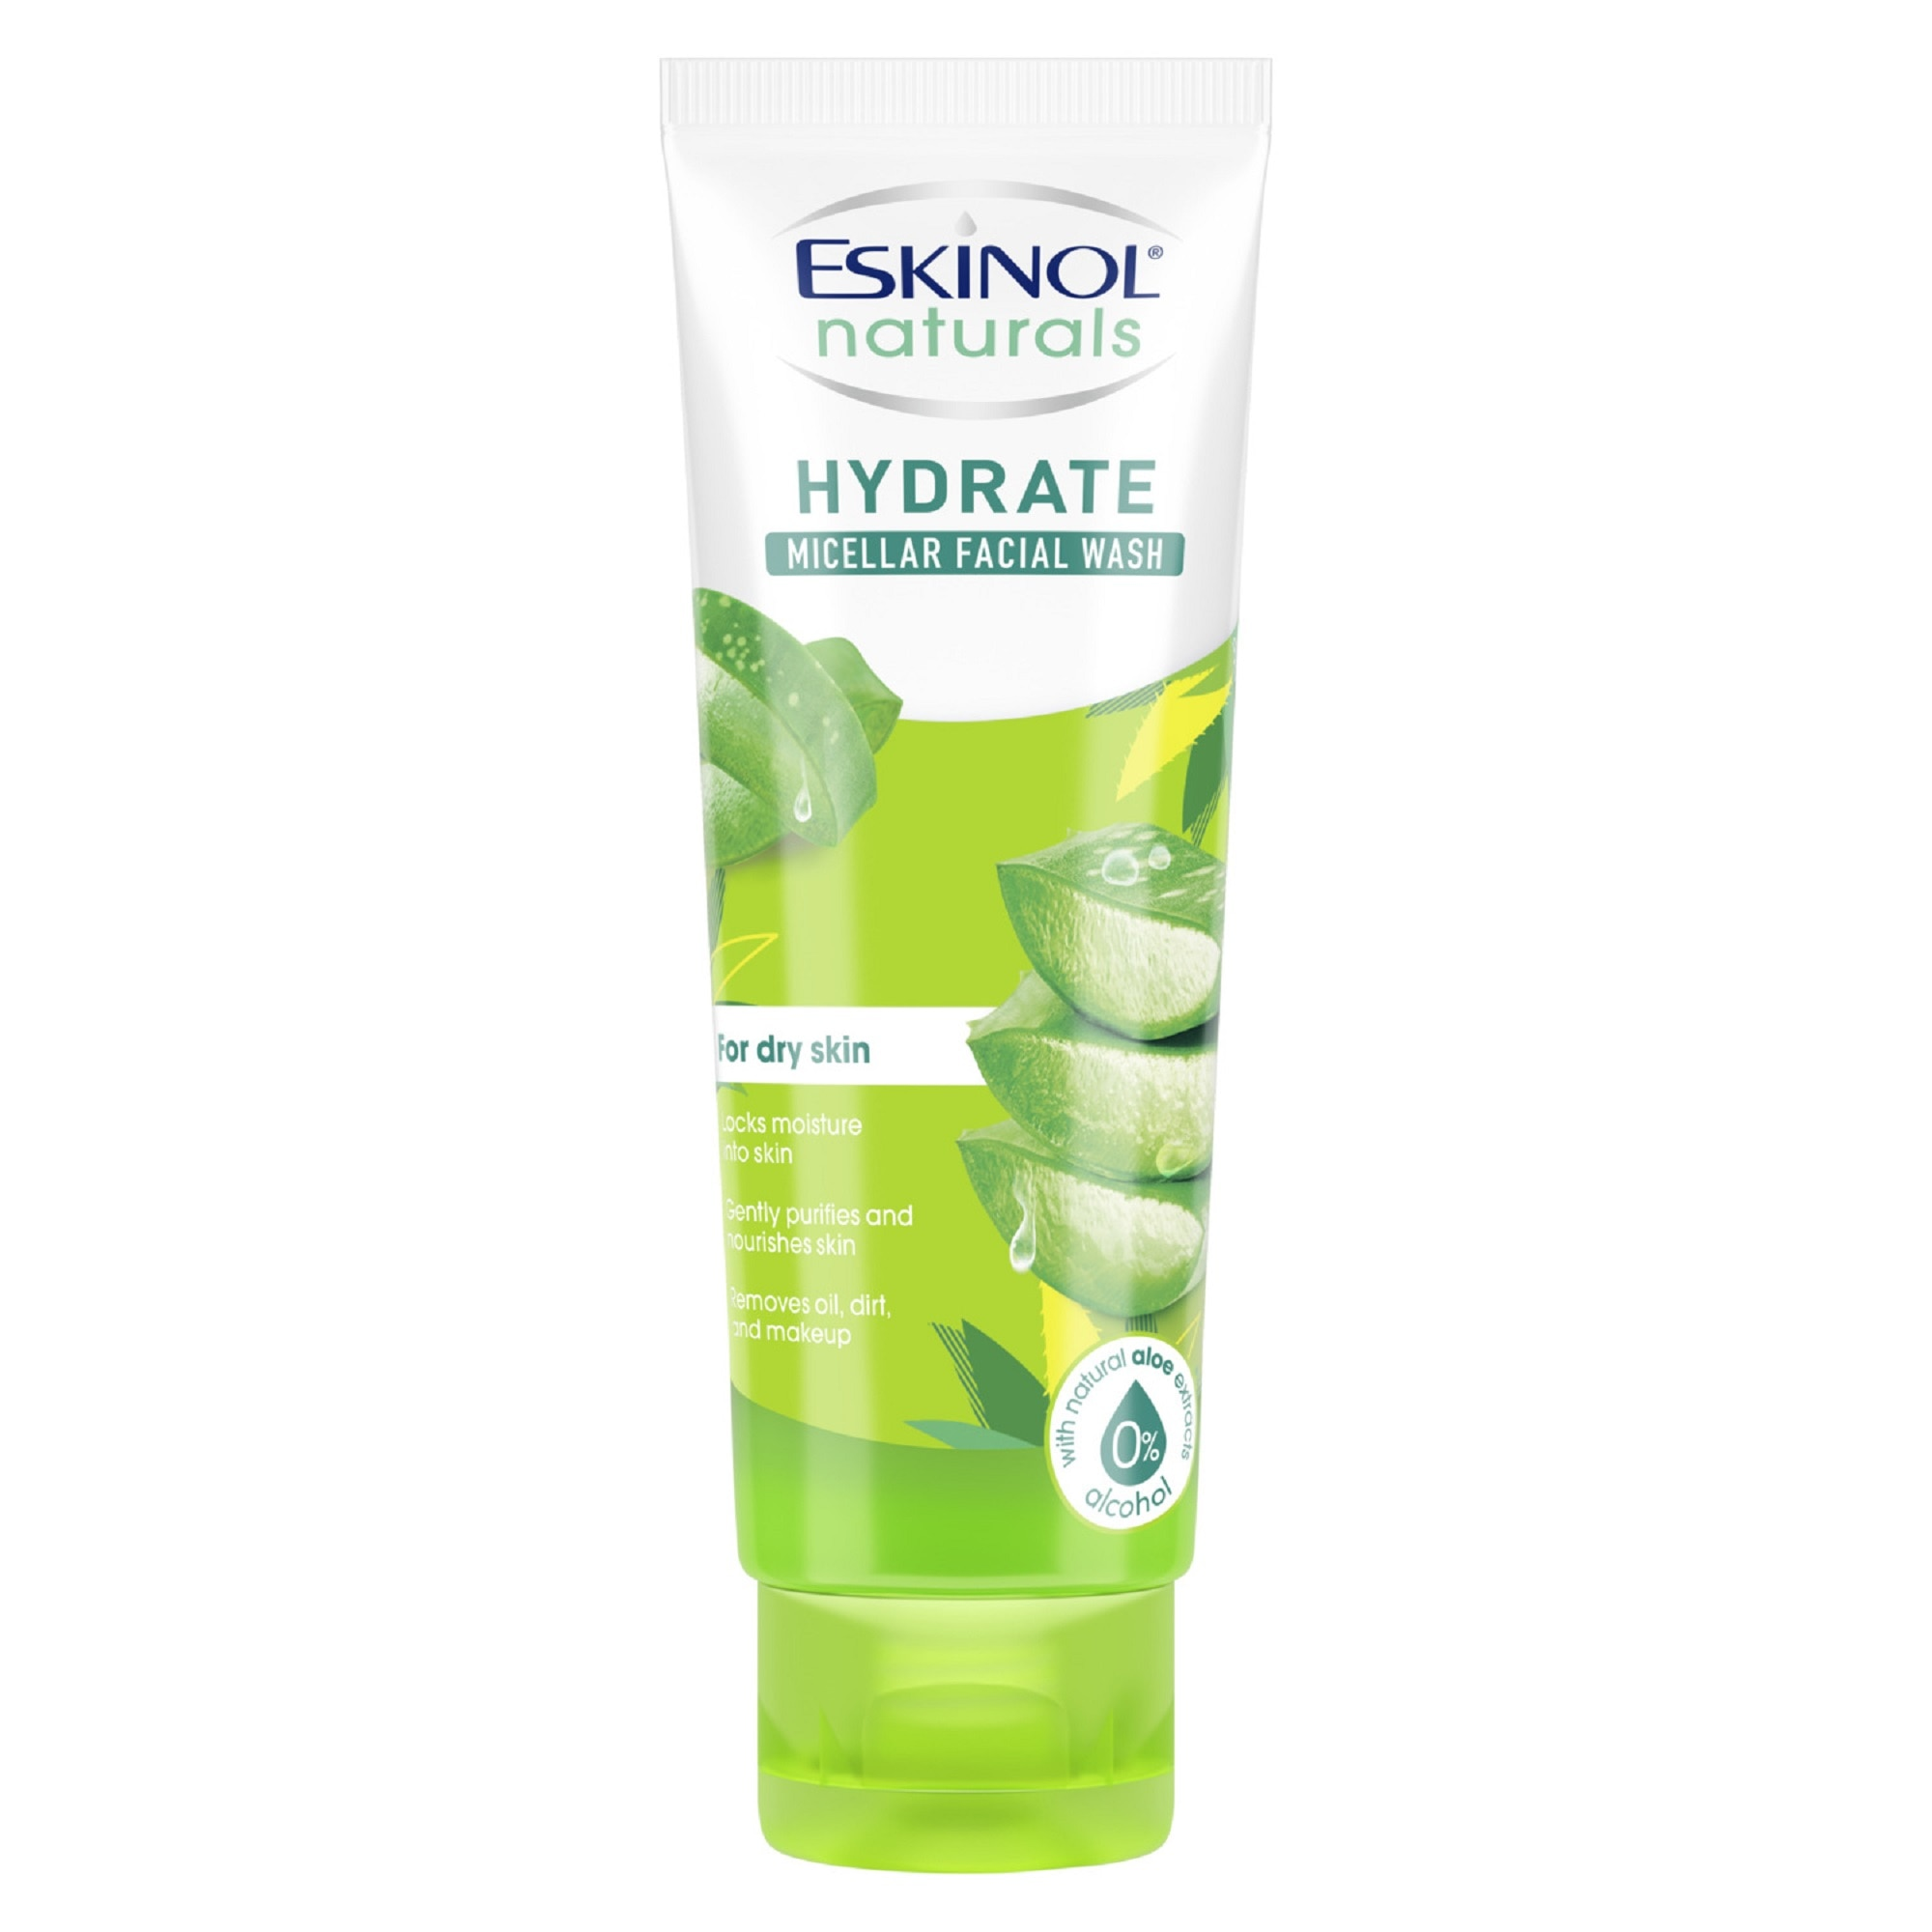 ESKINOLNaturals Micellar Facial Wash Hydrate with Natural Aloe Extracts 100g,For WomenFree (1) Watsons Dermaction Plus Antiacne St20x2 for every purchase of Skin Care products